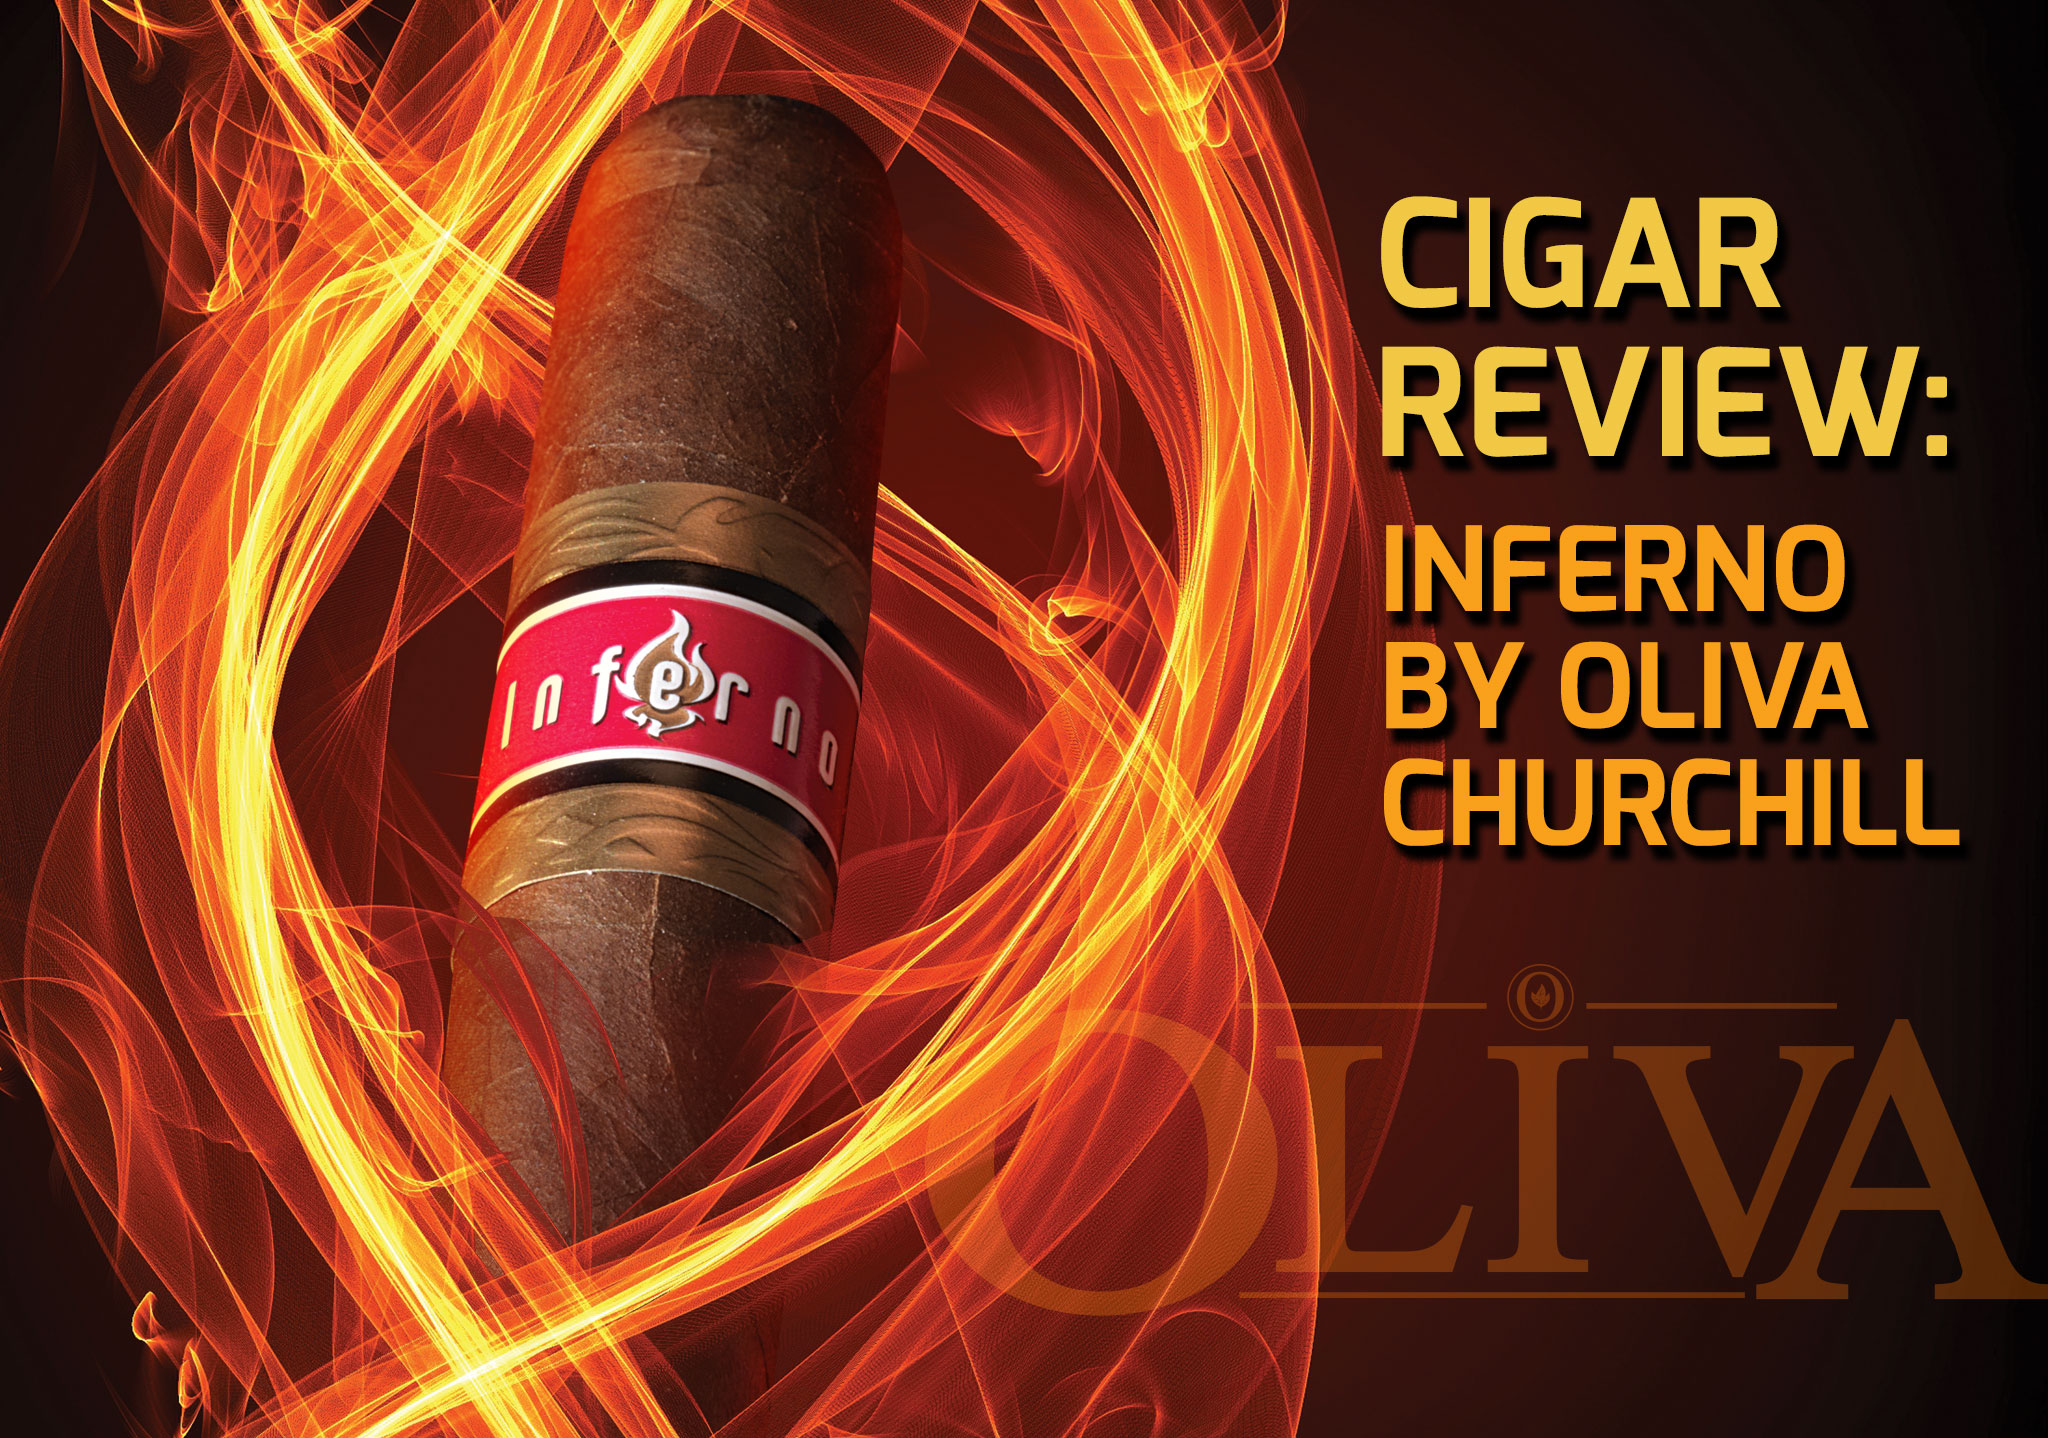 Cigar Review: Inferno by Oliva Churchill